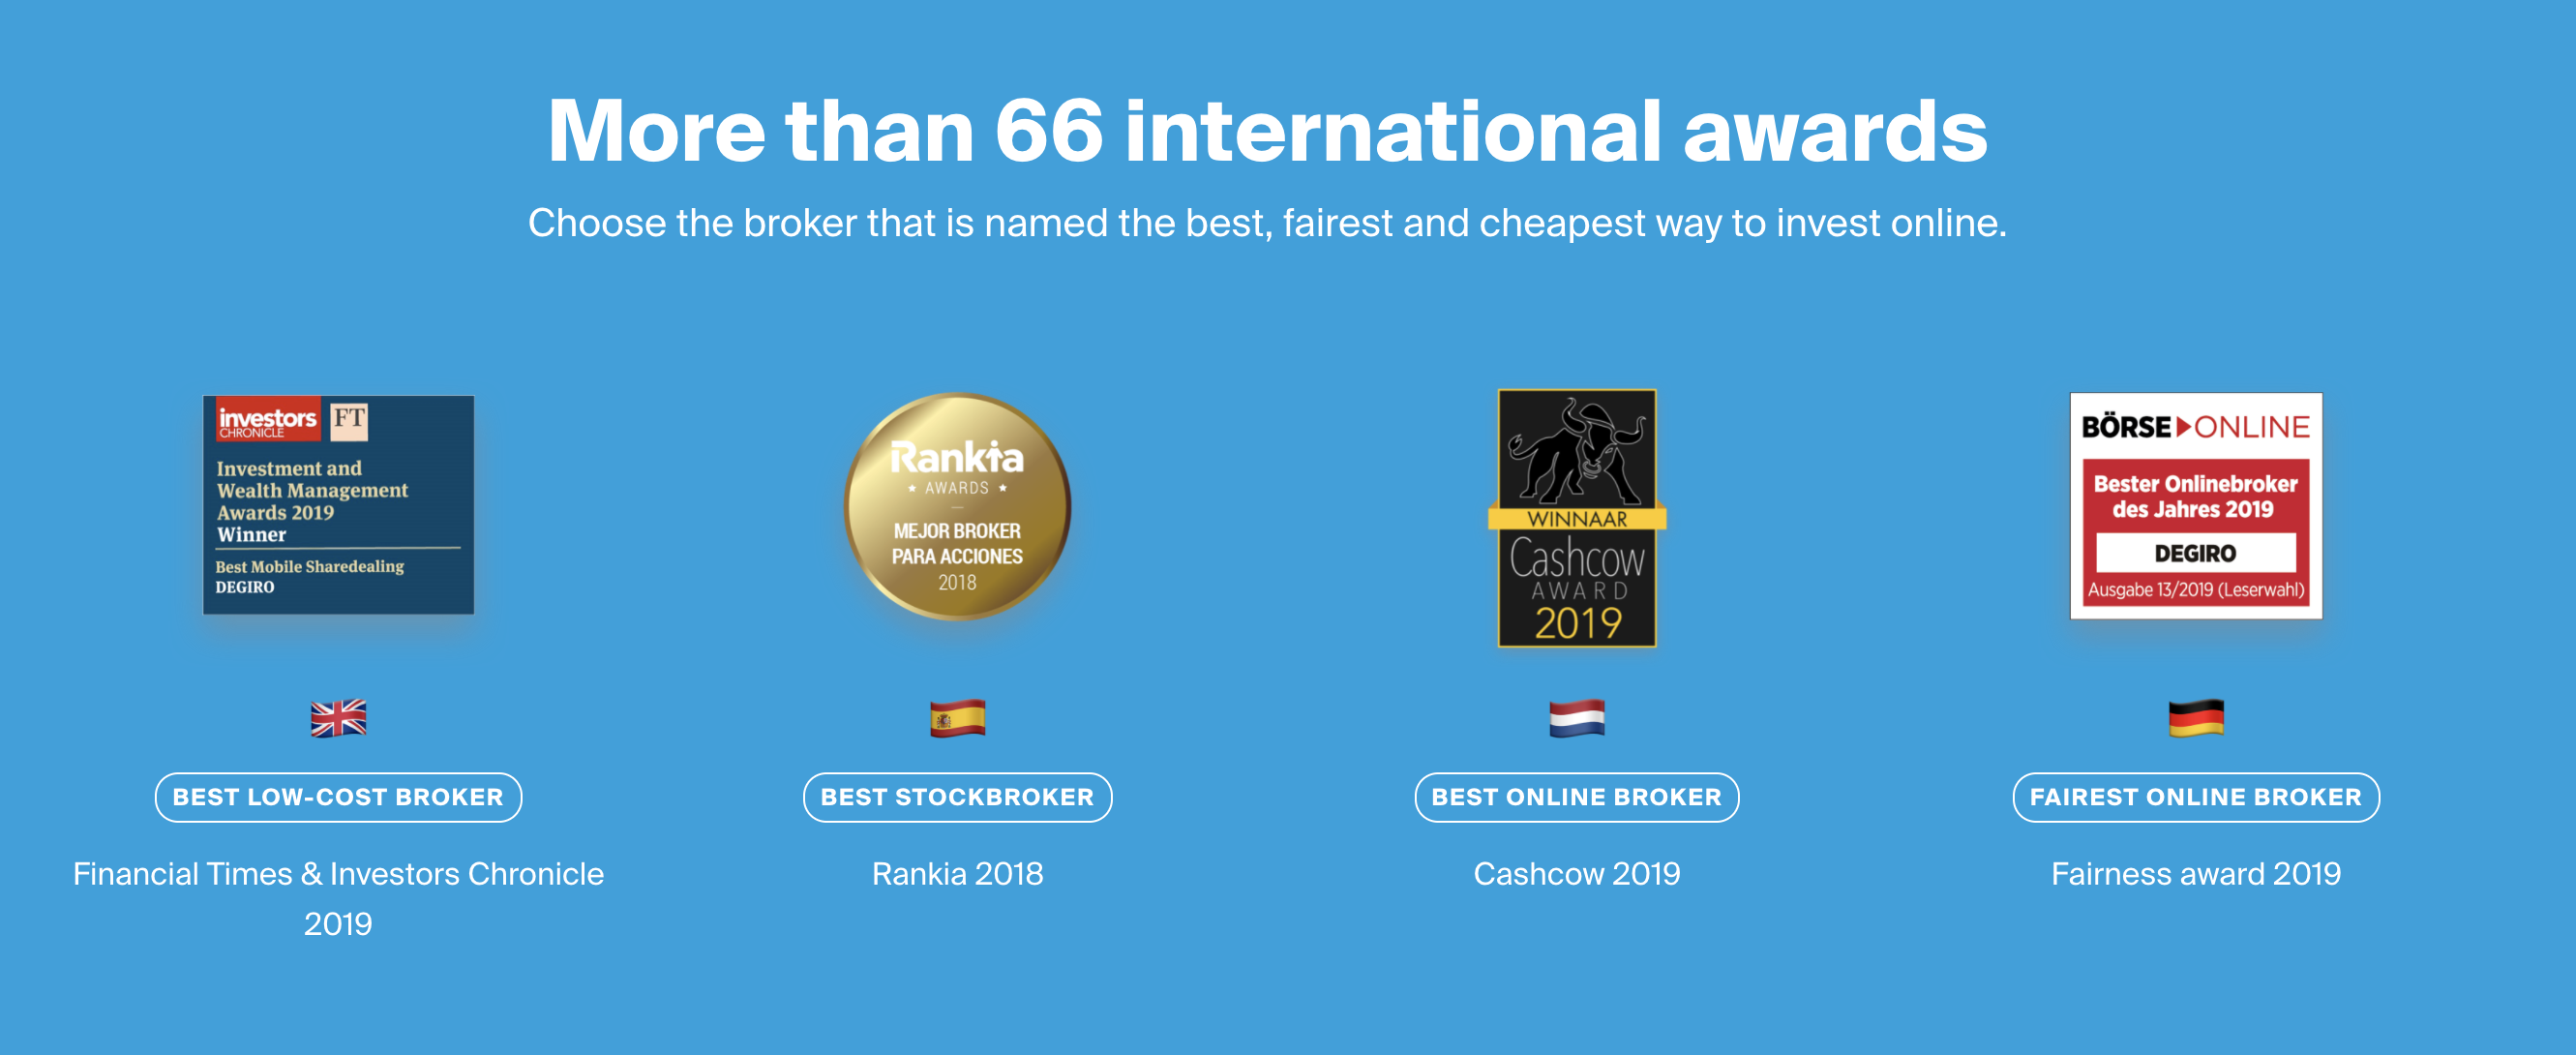 An image from degirogroup.com showing all the awards the company has won for best broker across Europe.